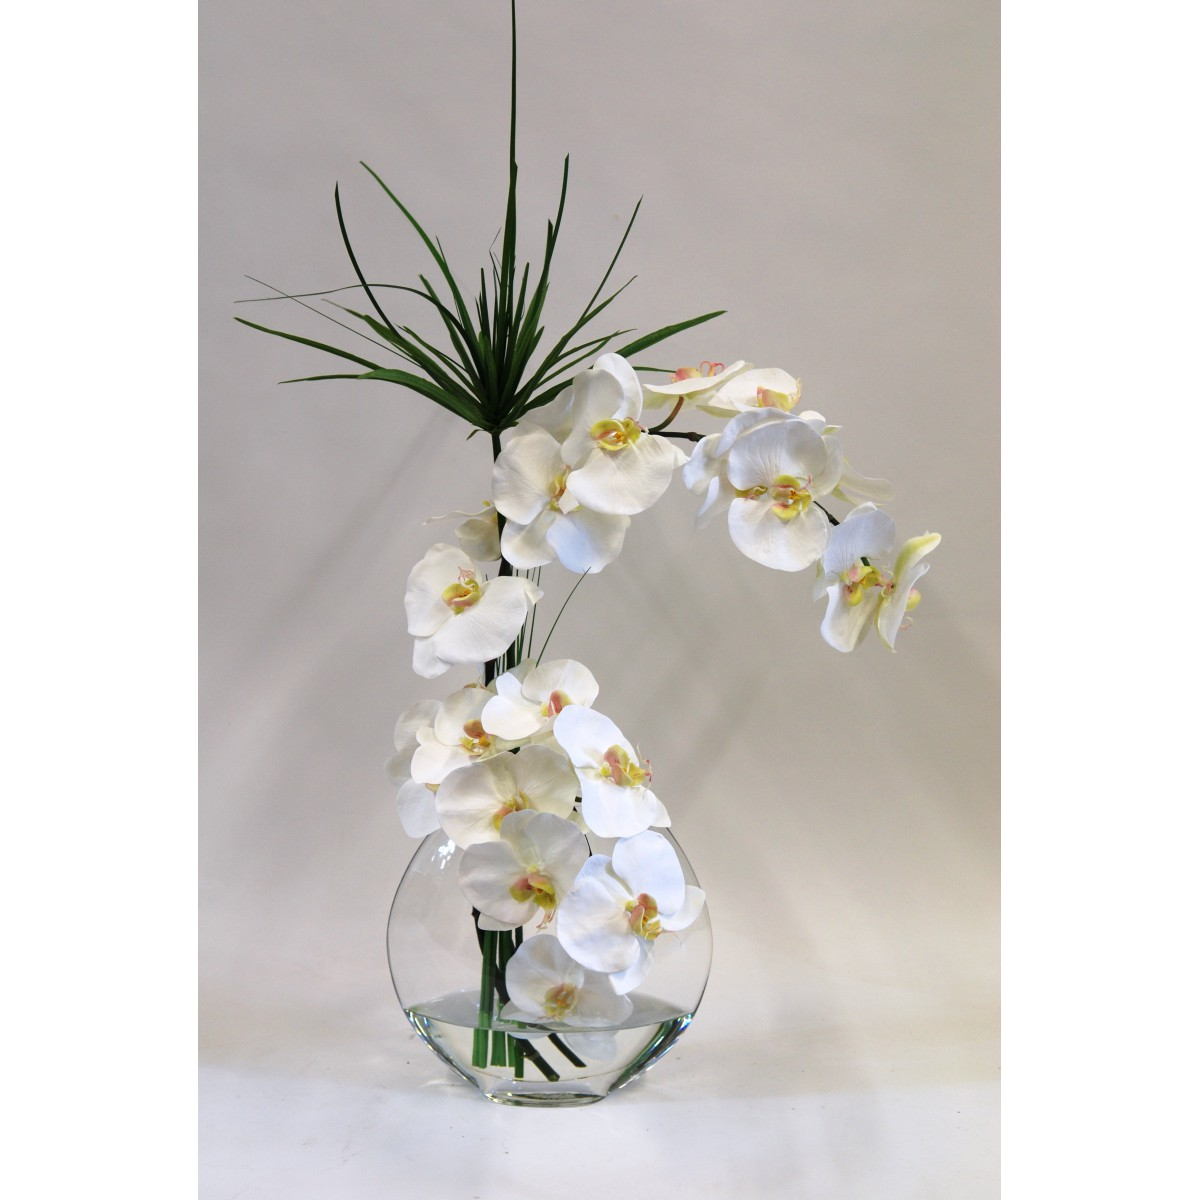 Composition florale dans vase transparent fashion designs - Composition florale vase en verre ...